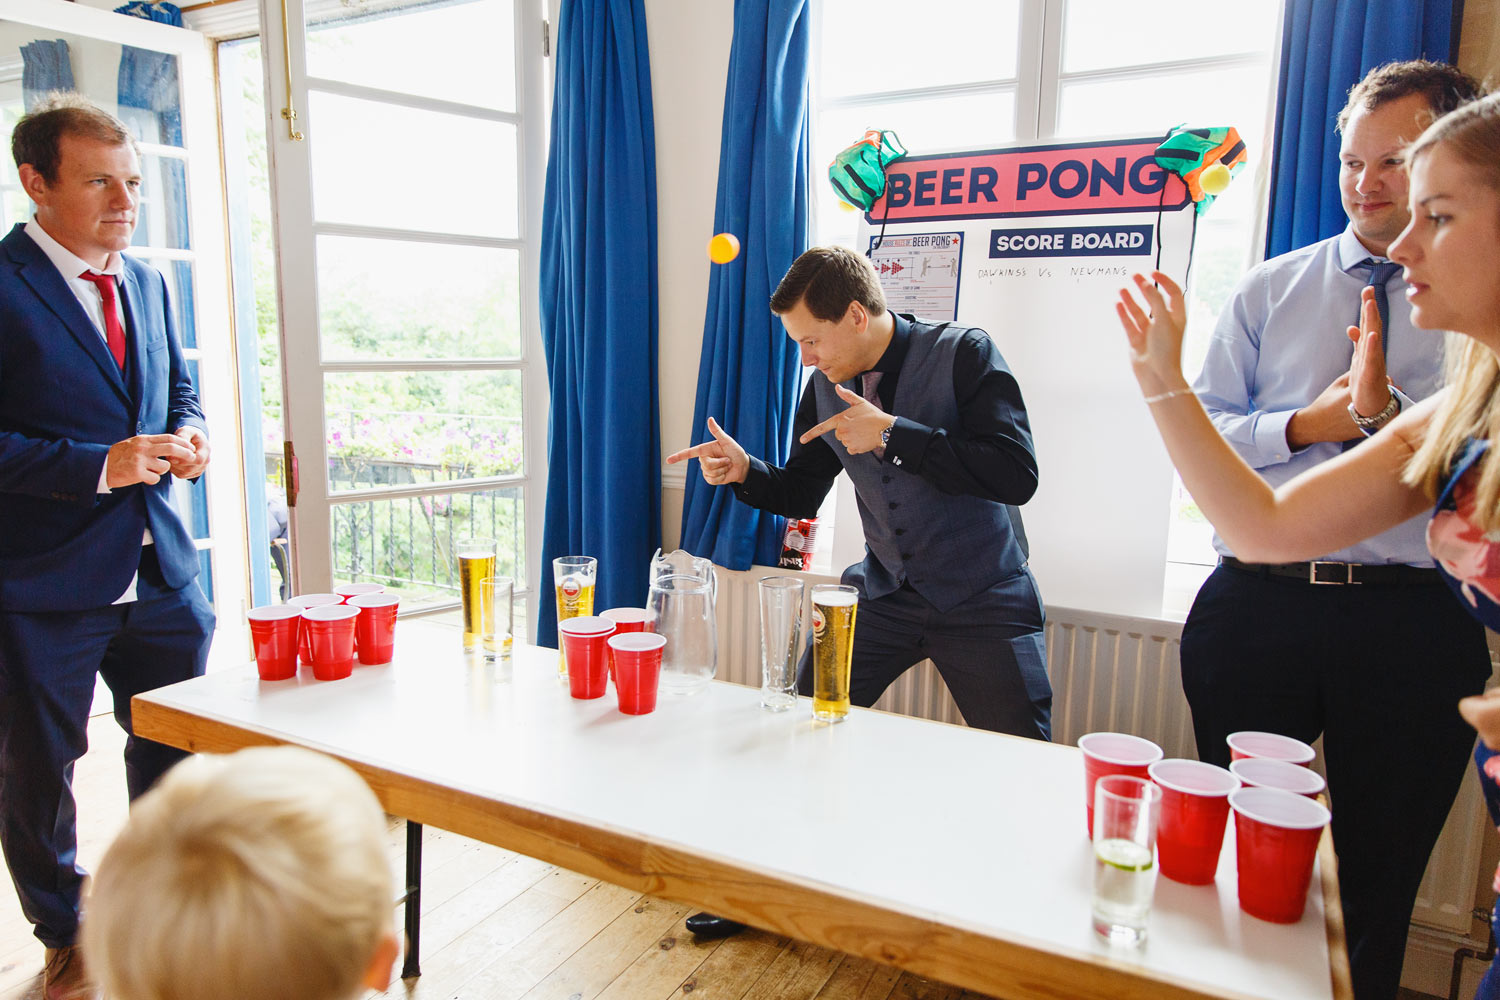 Wedding guests play beer pong at the Twickenham Rowing Club, London.